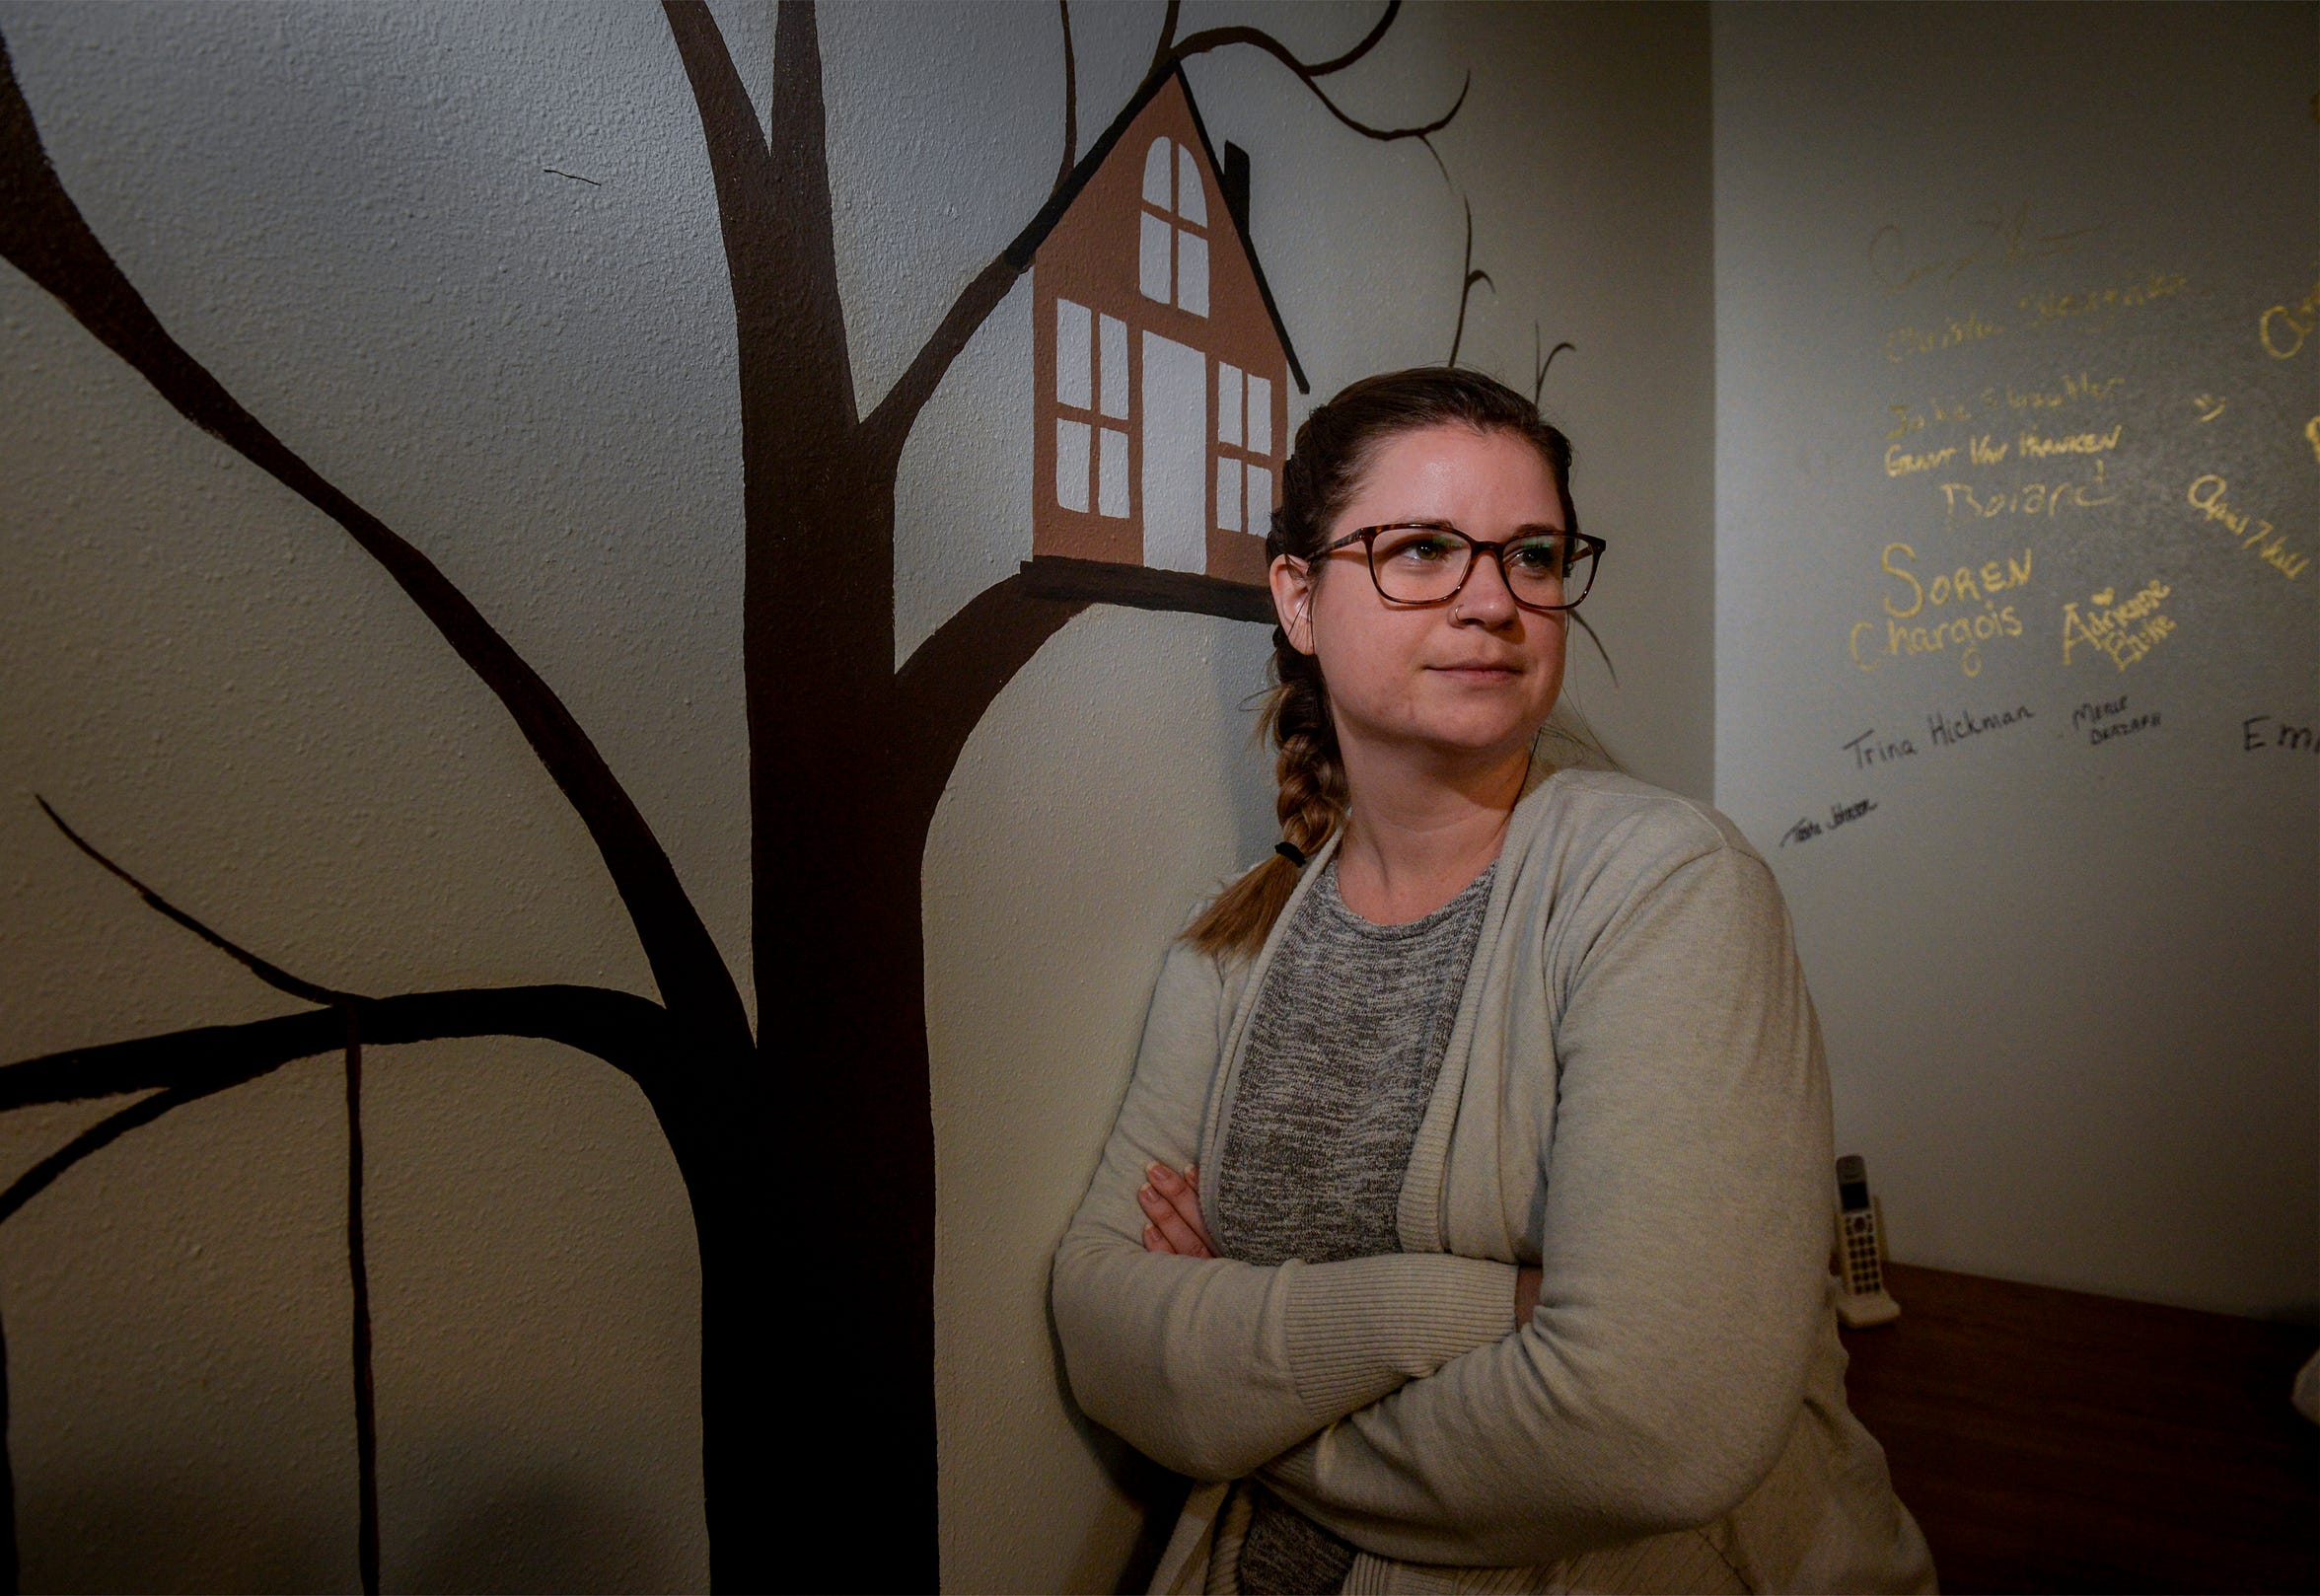 Samantha Stutzman, program coordinator for Toby's House Crisis Nursery, is hoping to open the seven bed nursery serving children six years old and younger in early 2020.  Toby's House will offer parents emergency child care for up to 72 hours.